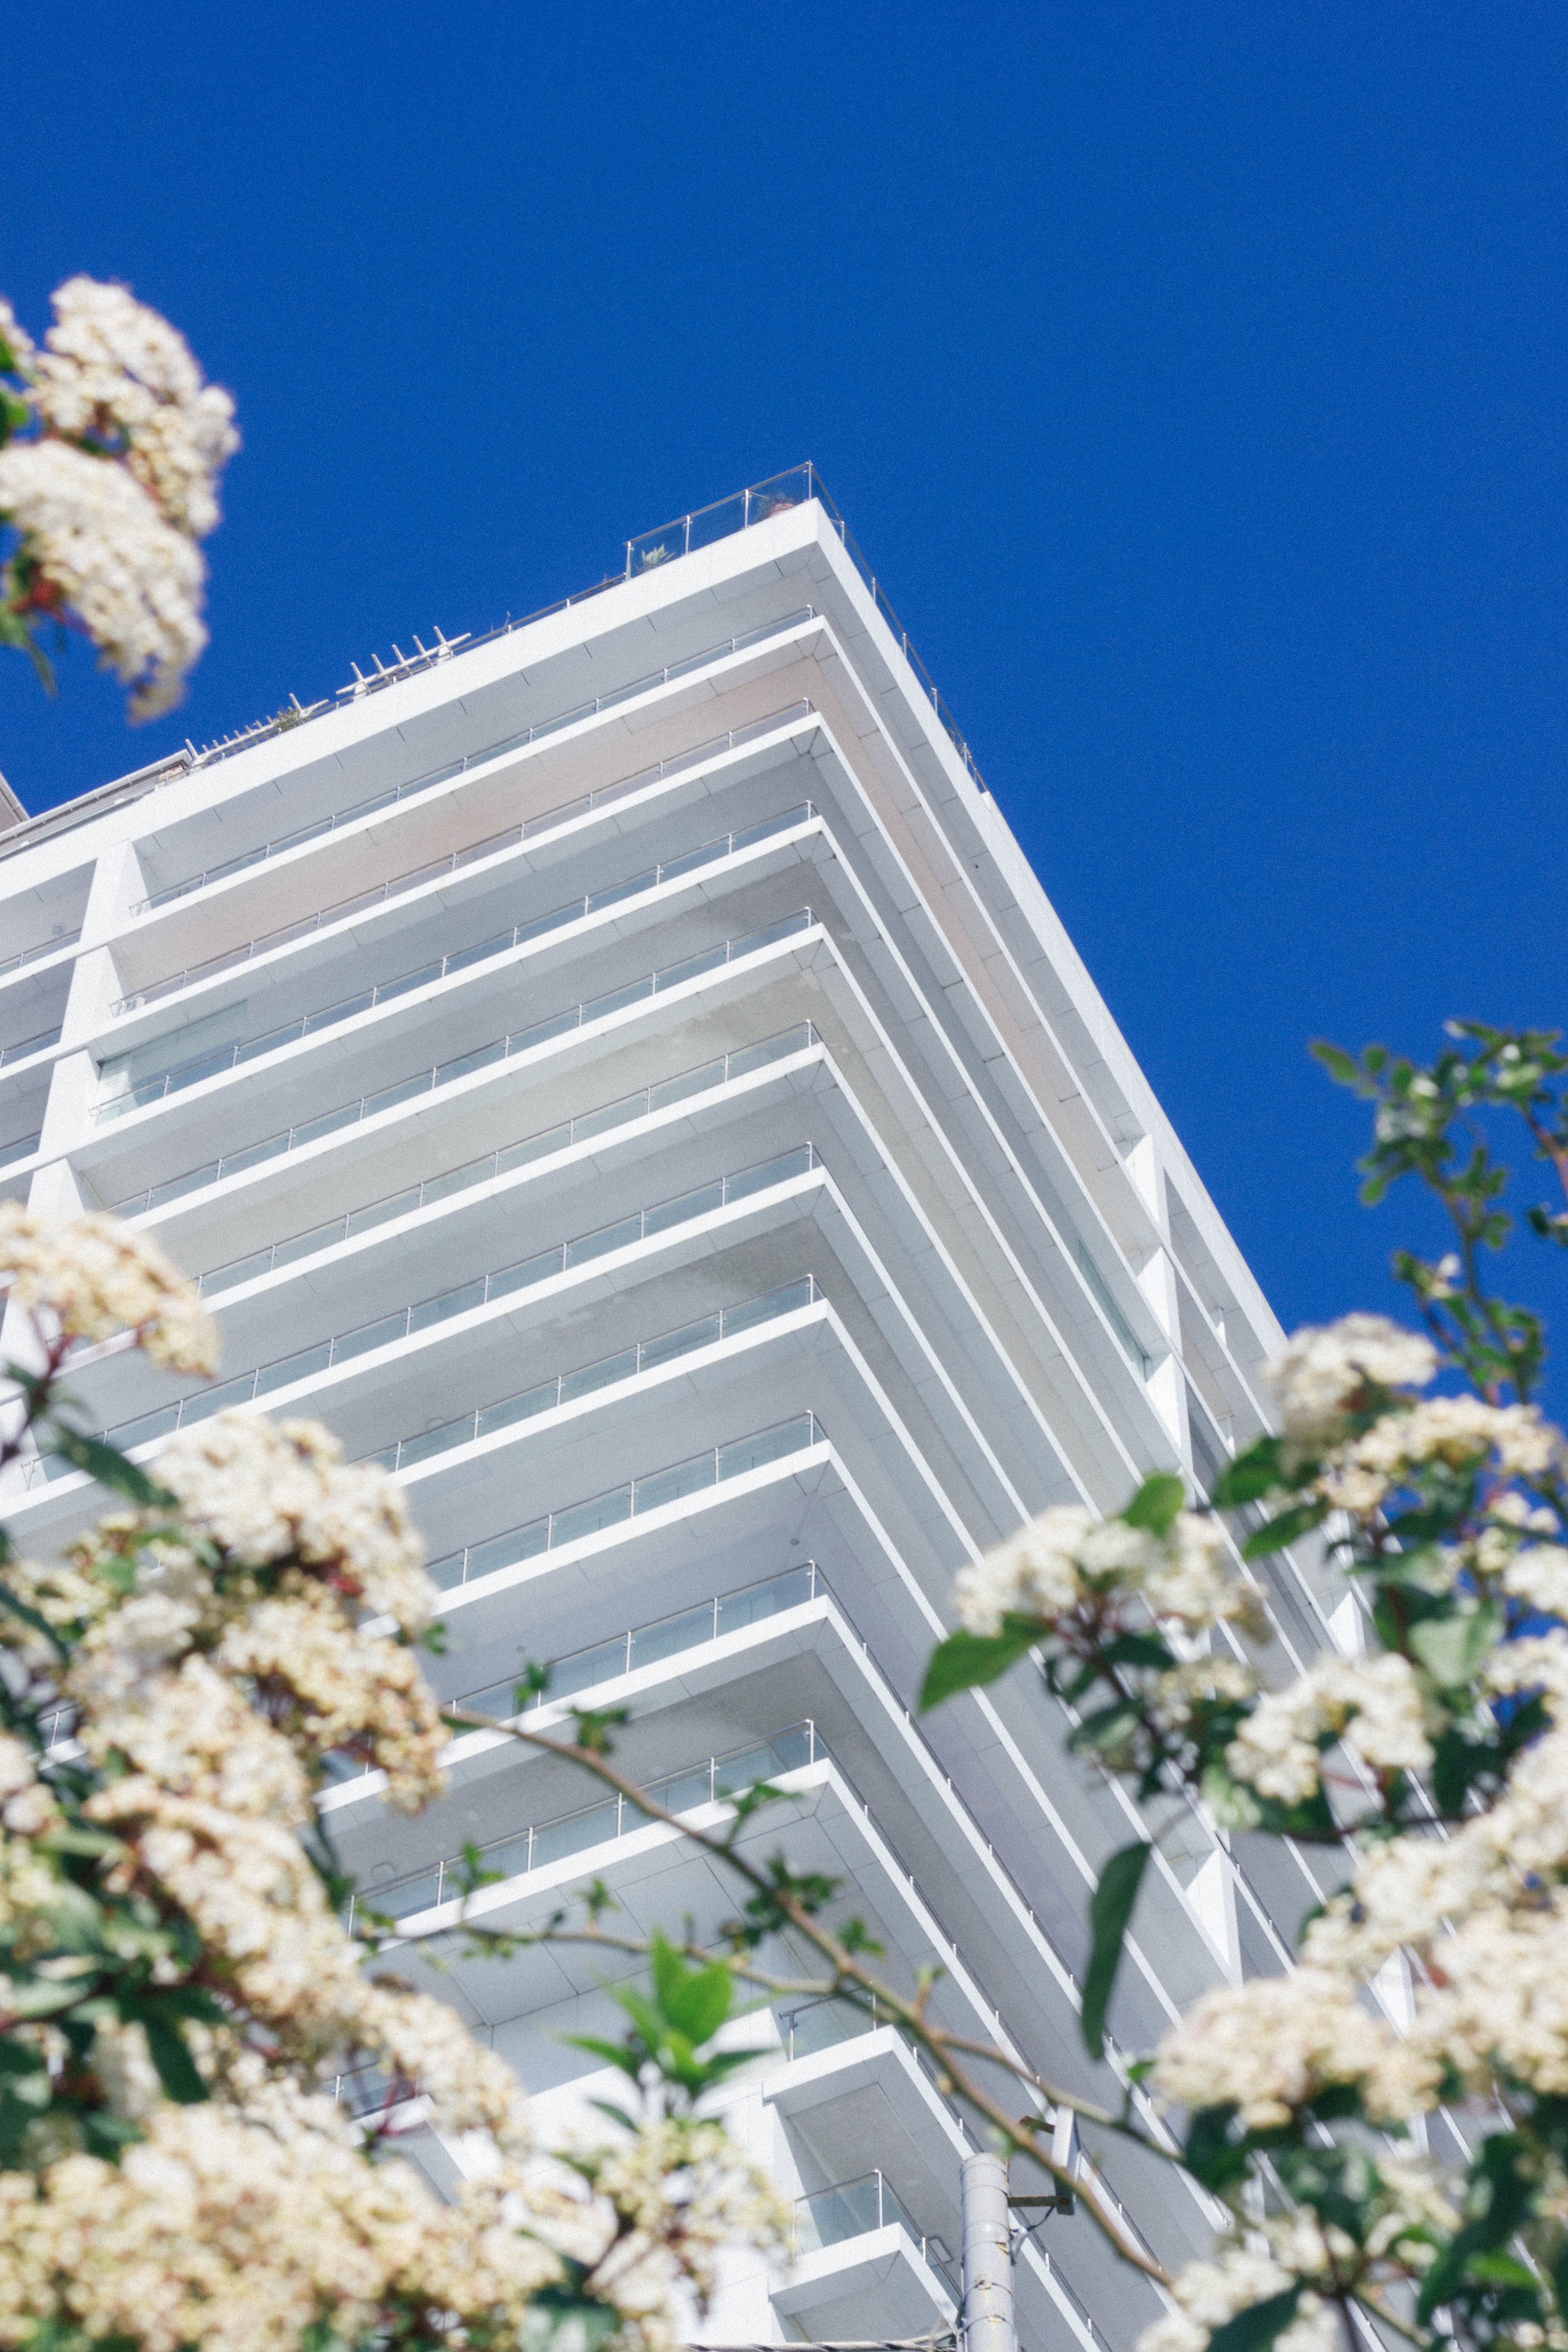 low angle photography of a white building